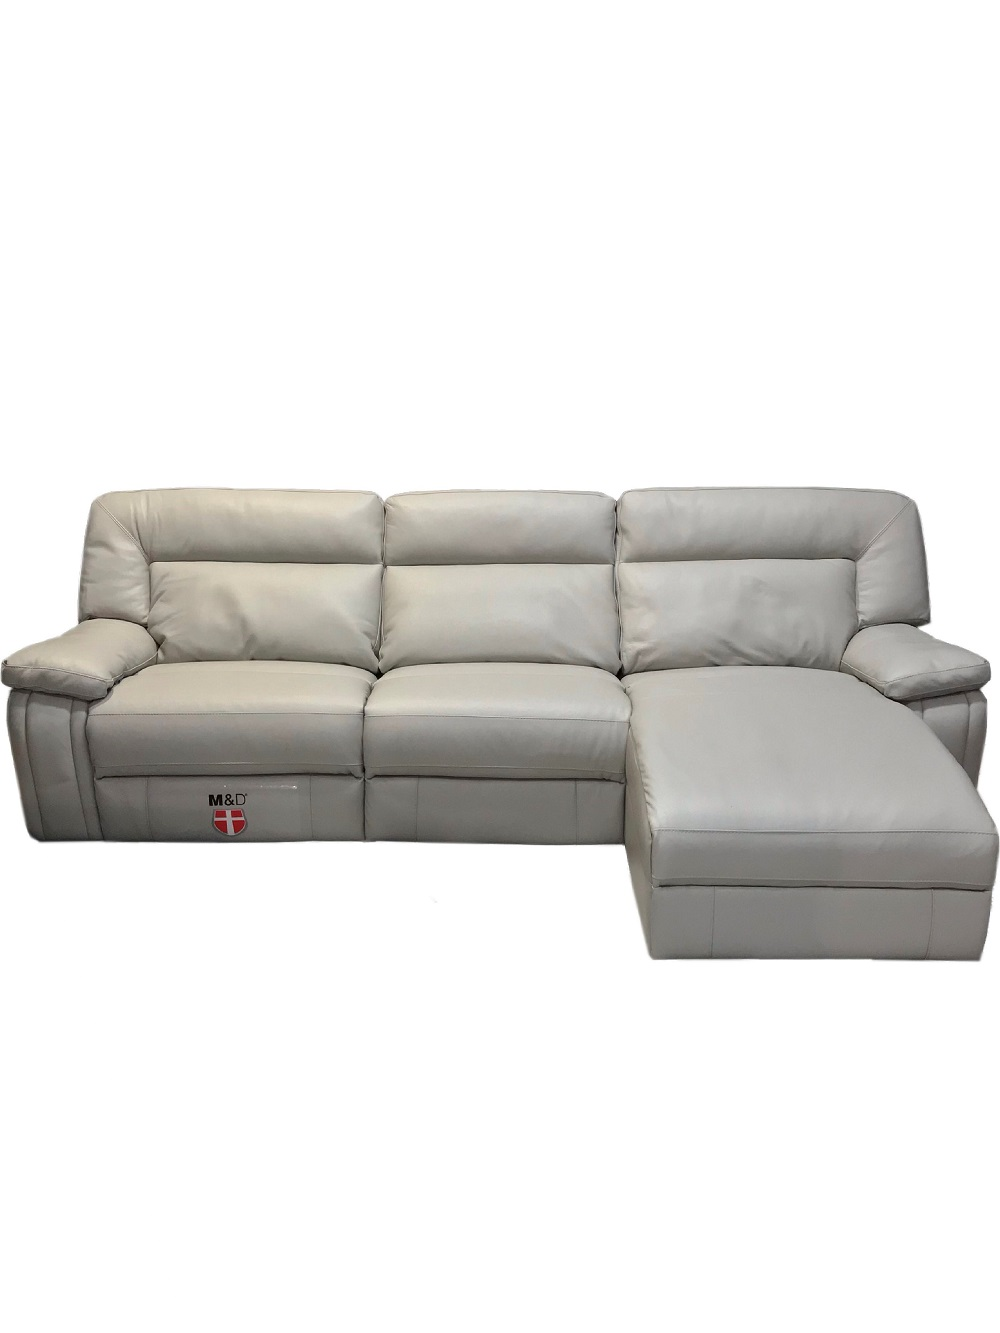 ee71 reclining 3 seater chaise combo by milano and design make rh makeyourhouseahome com au